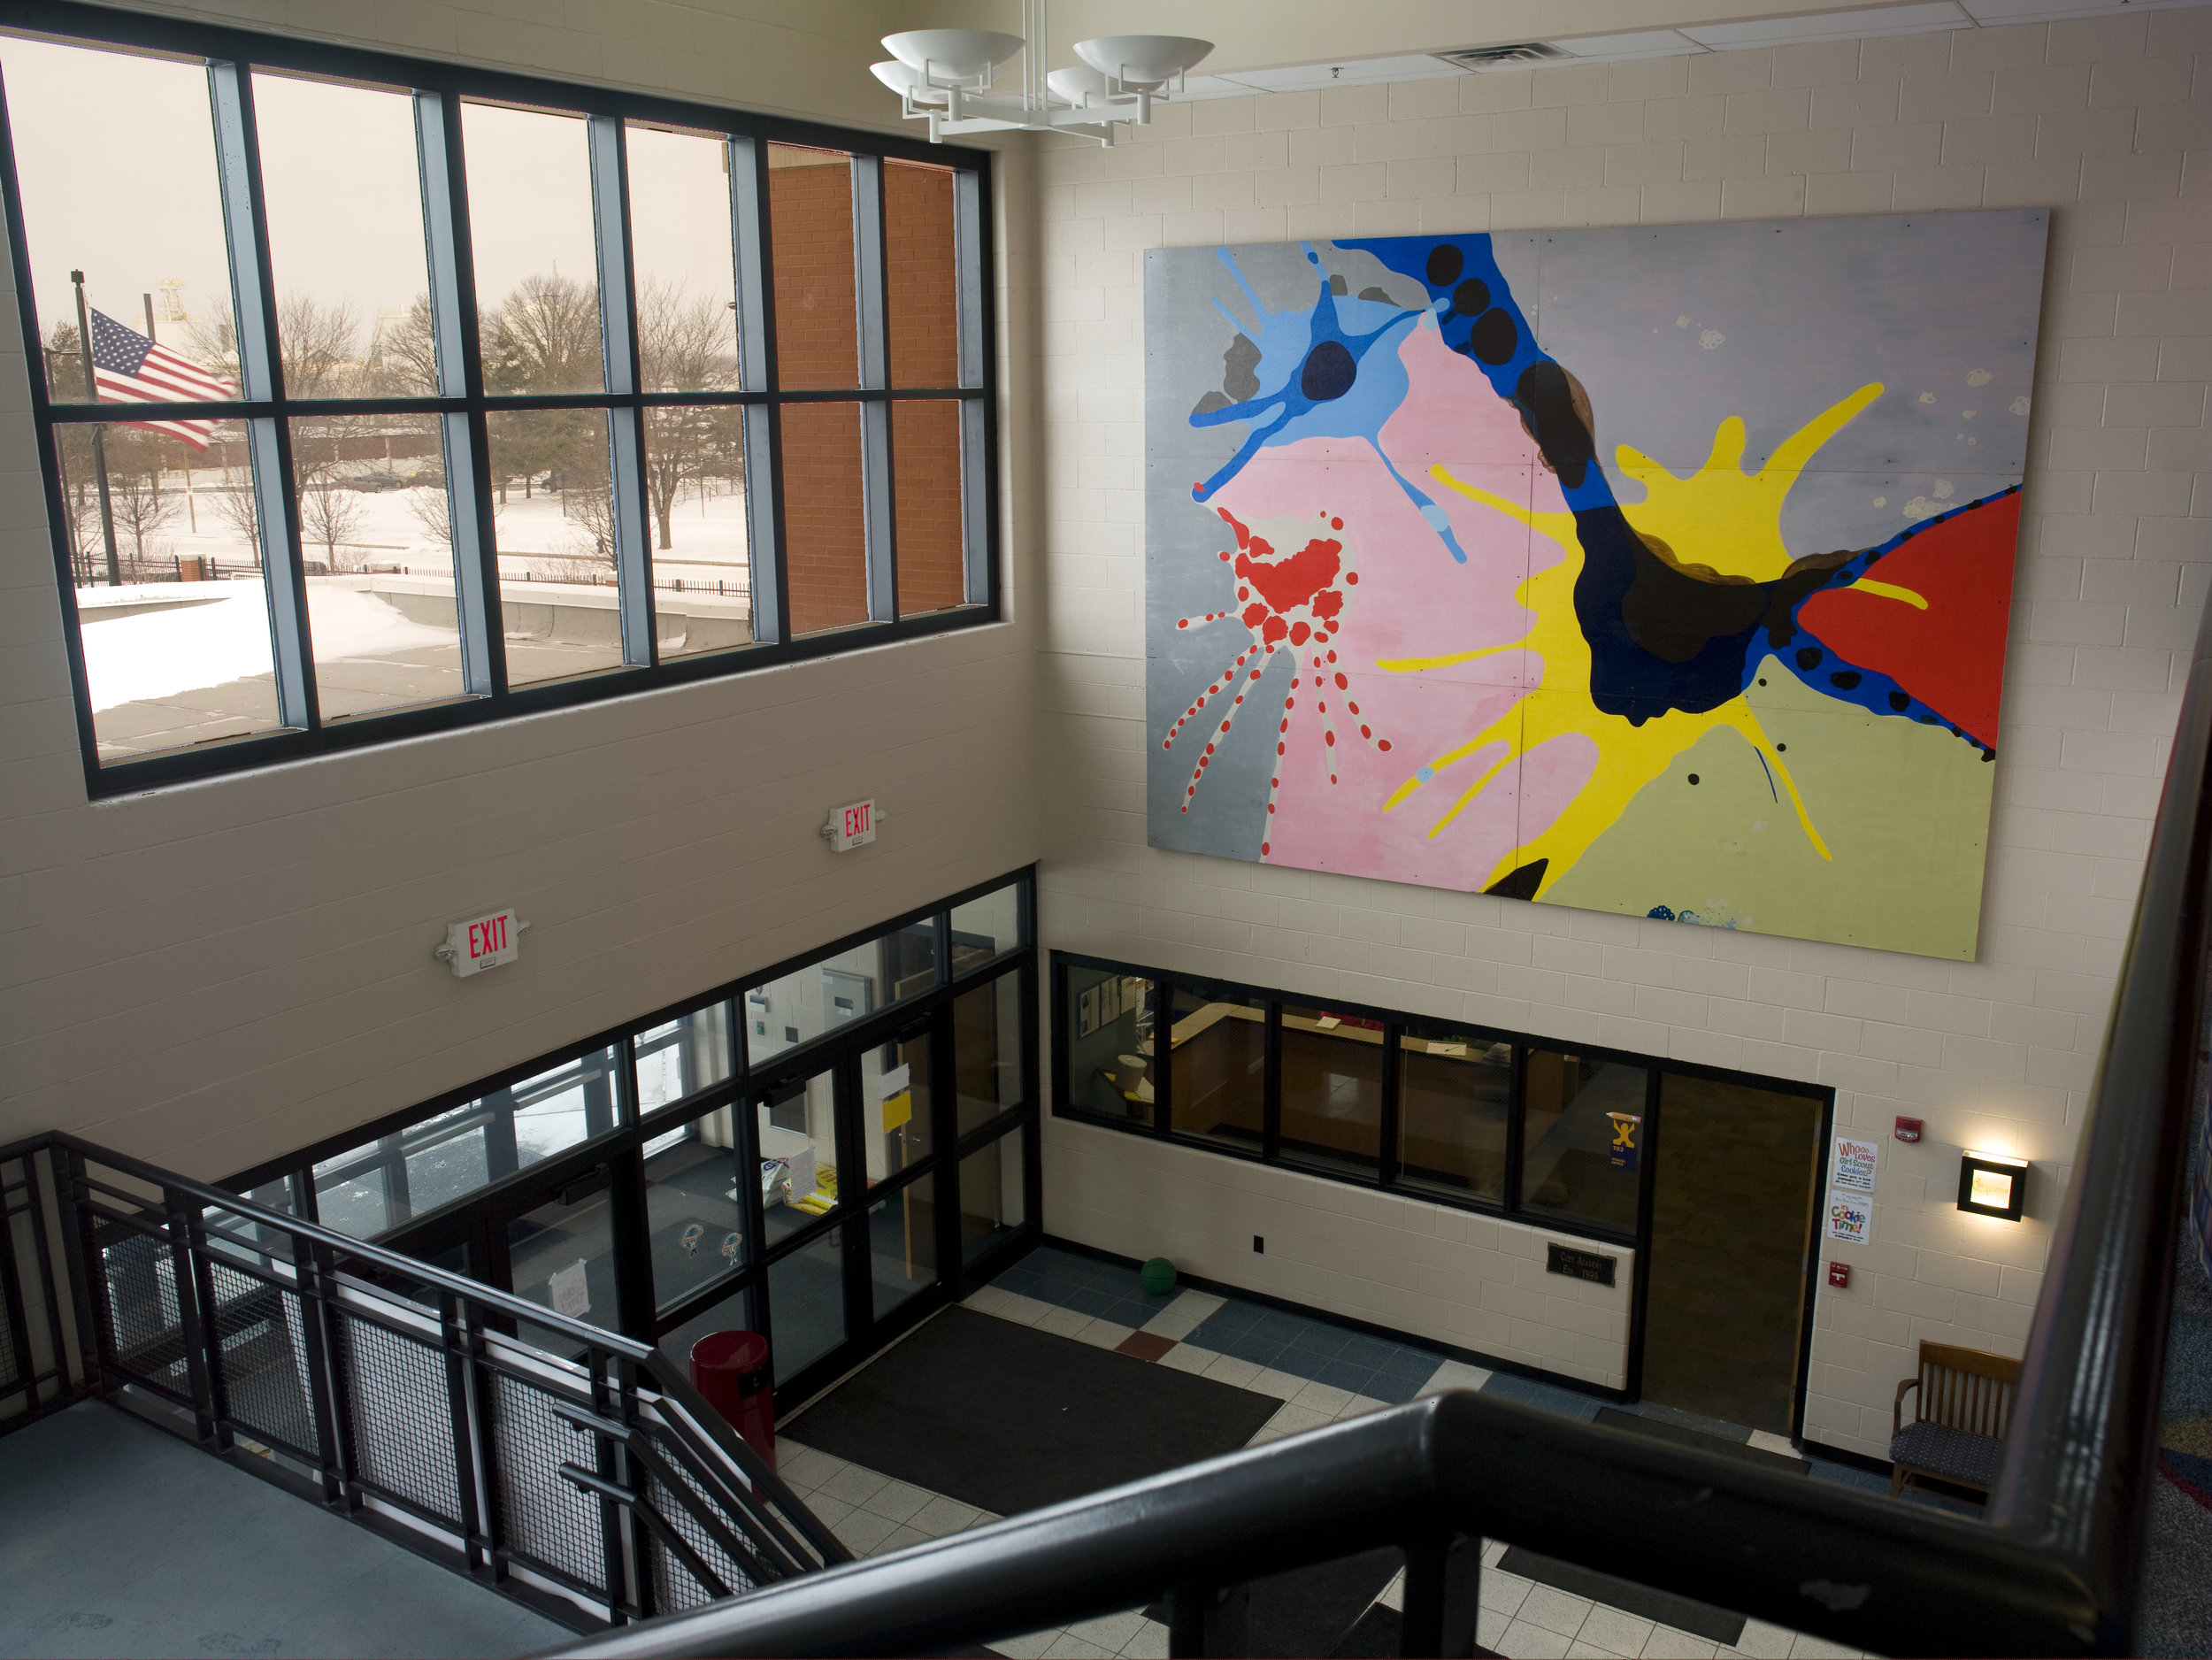 The Dance,  2005  acrylic on wood  12 feet x 16 feet  City Academy, Saint Louis